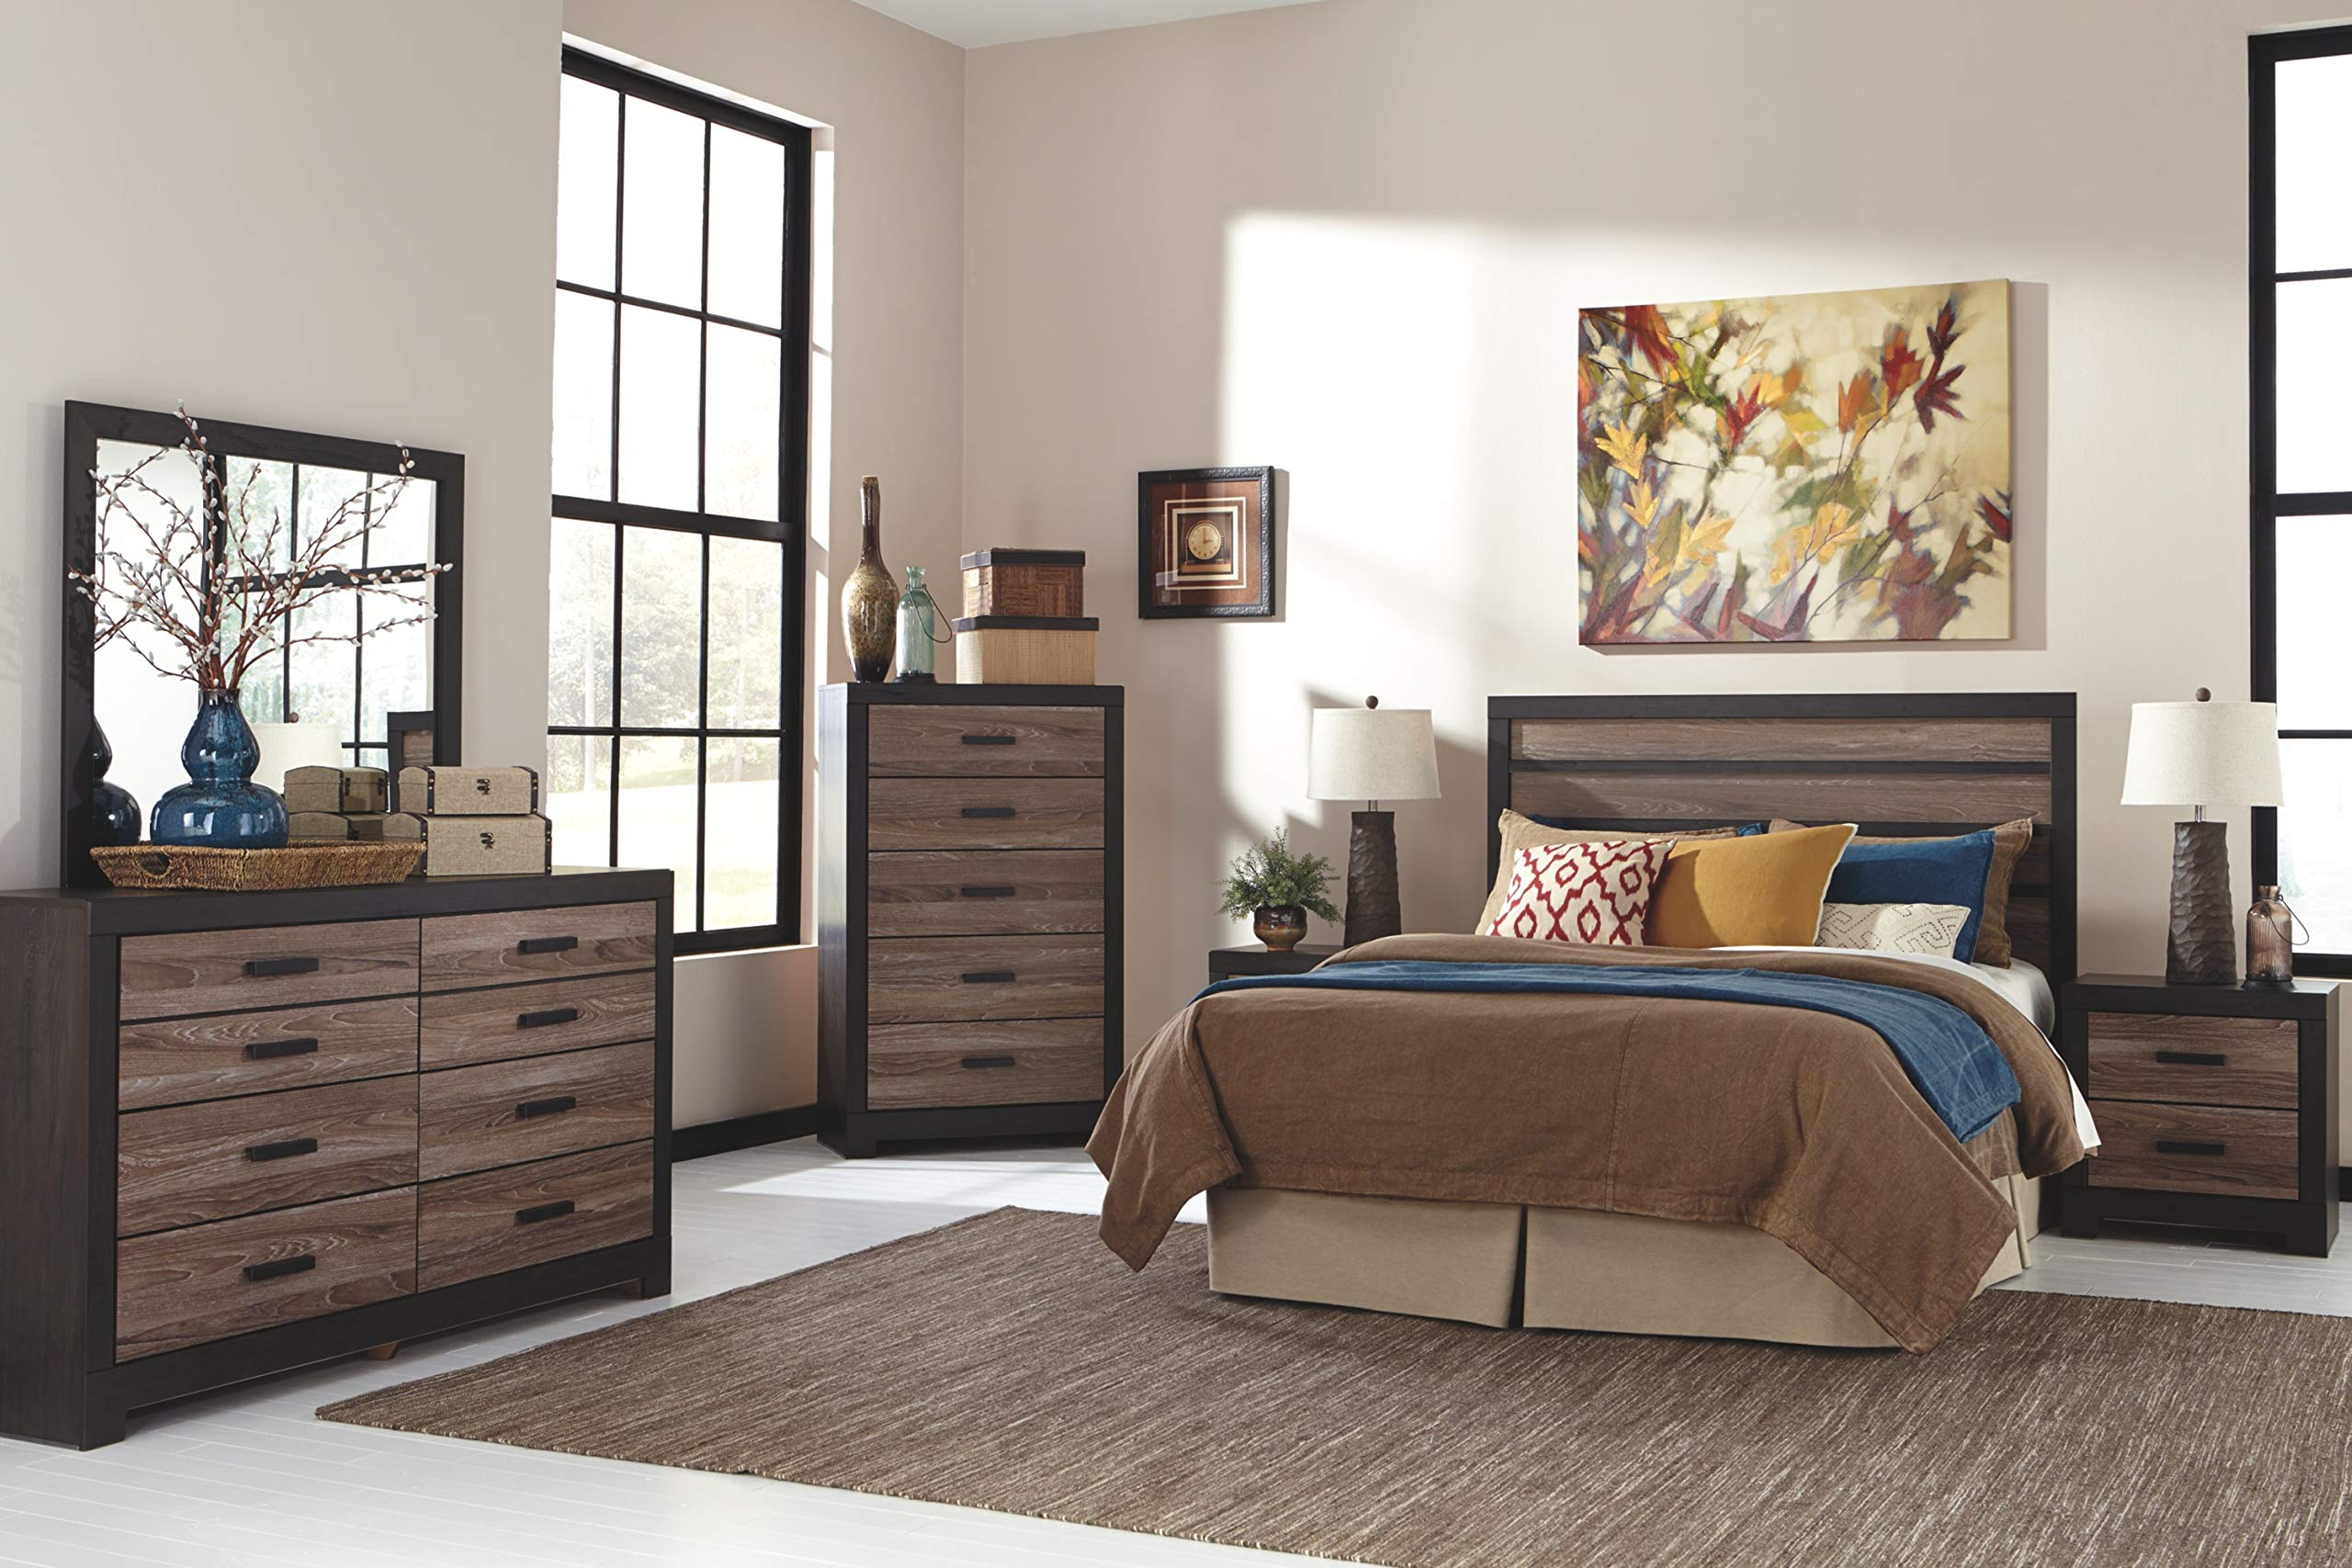 Ashley Furniture Signature Design - Harlinton Chest of Drawers - 5 Drawer Dresser - Contemporary Vintage - Warm Gray & Charcoal by Signature Design by Ashley (Image #9)